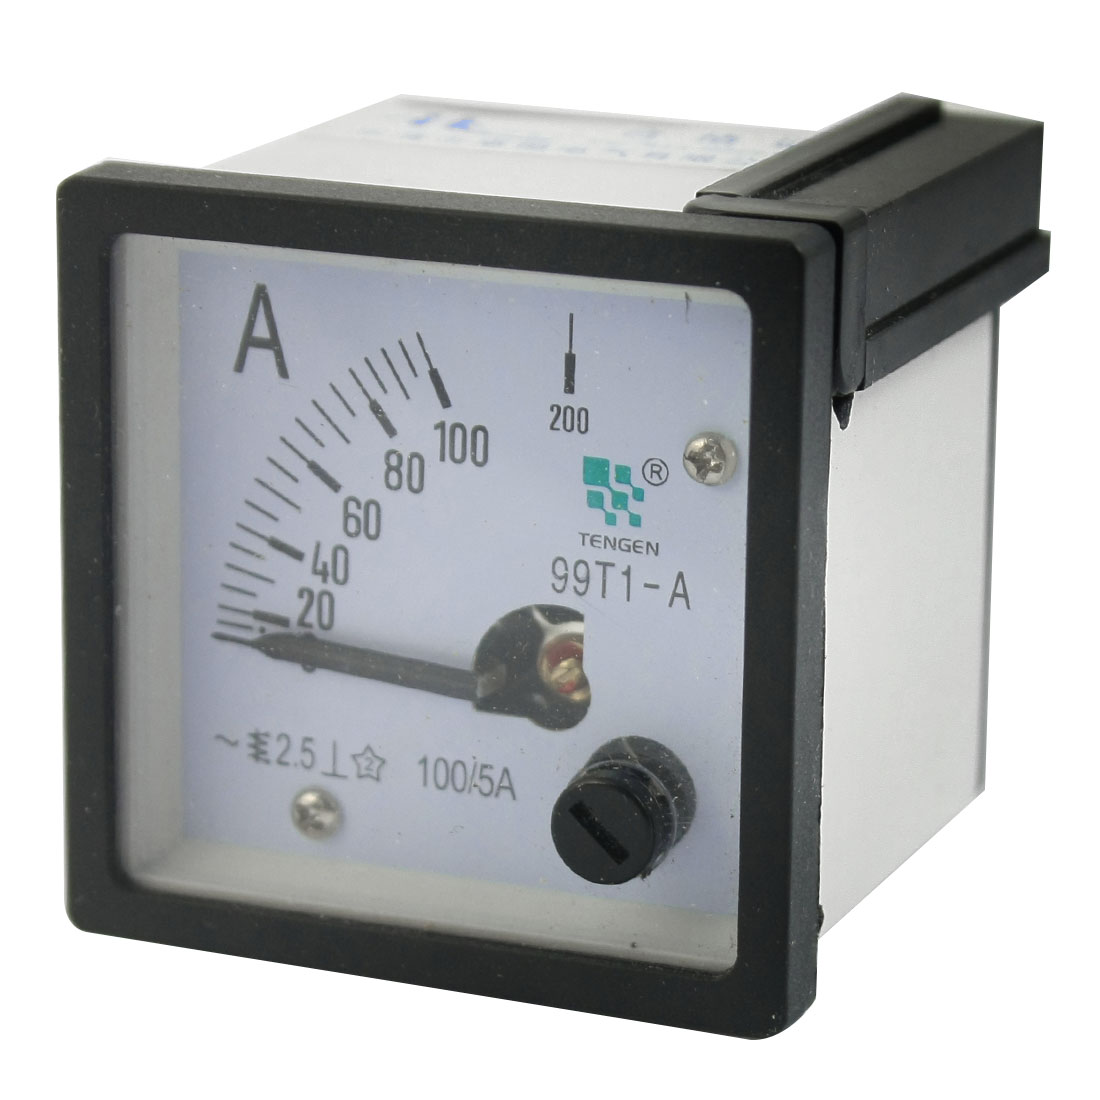 99T1 AC 0-100A Measuring Range Class 2.5 Current Testing Square Panel Analog Ammeter Amperemeter for School Lab